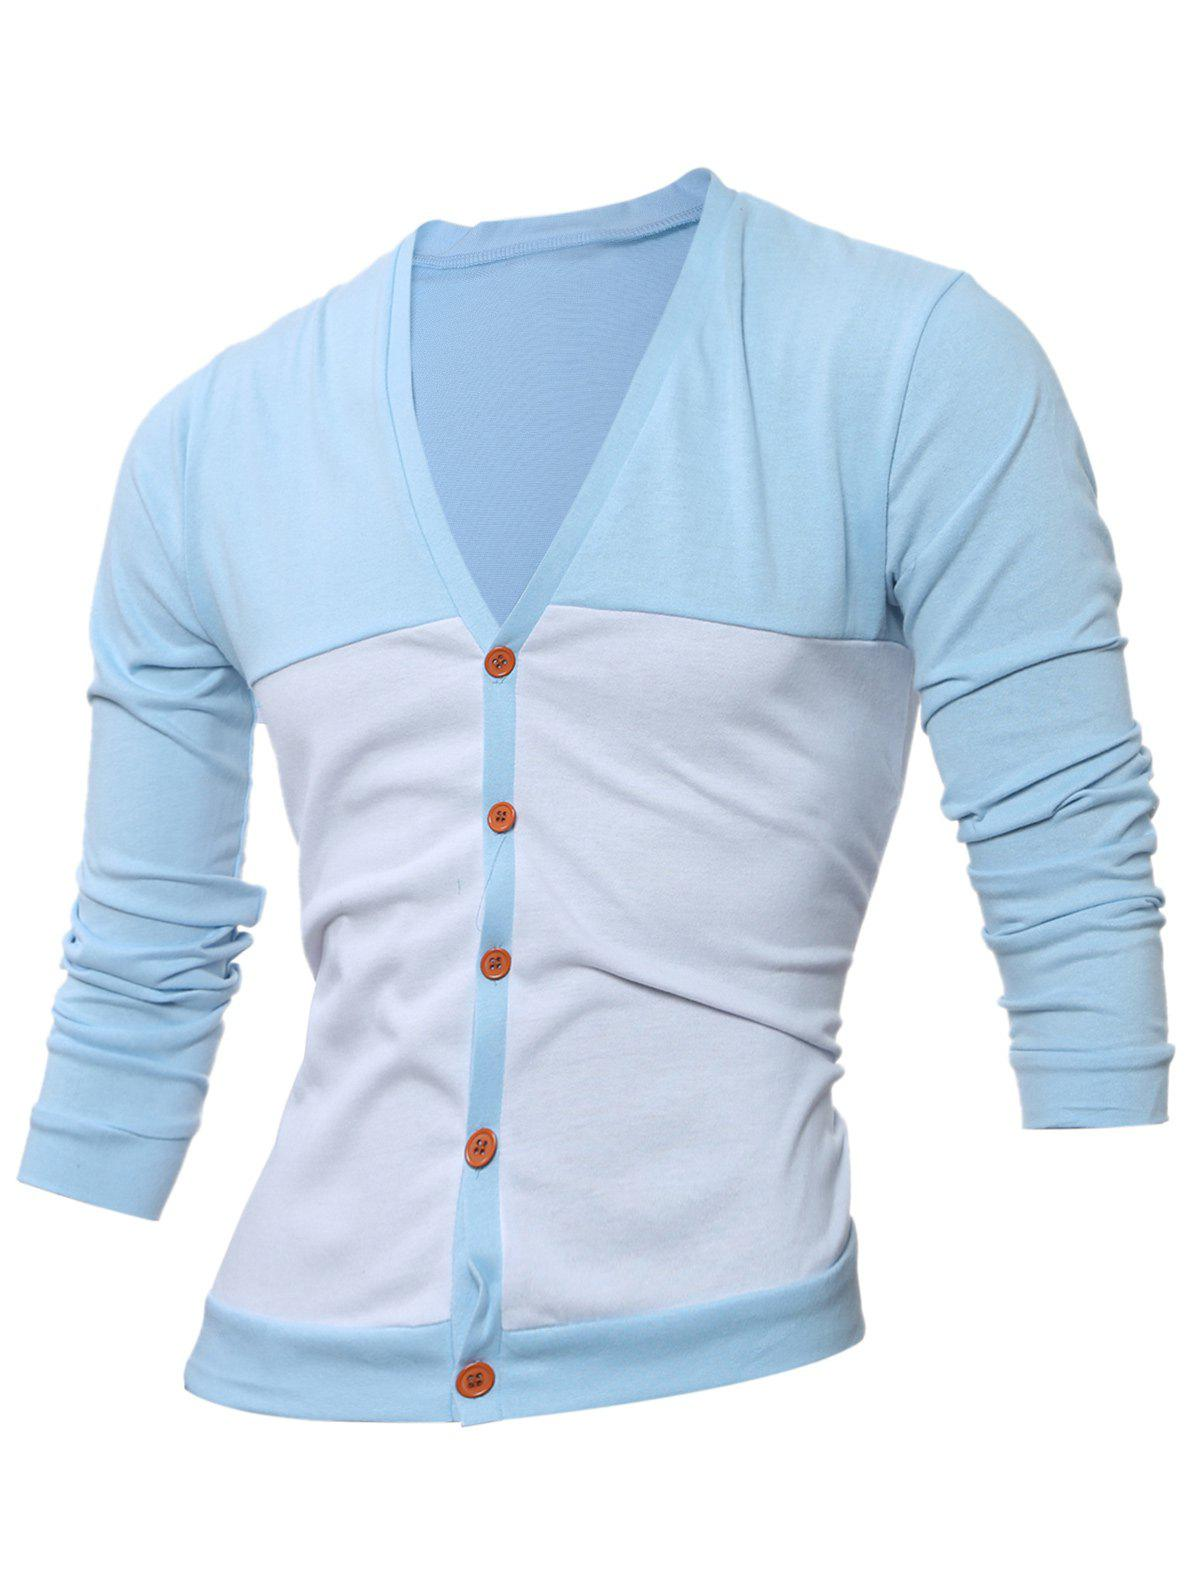 Button Up V Neck Two Tone Cardigan - ADDFFF M